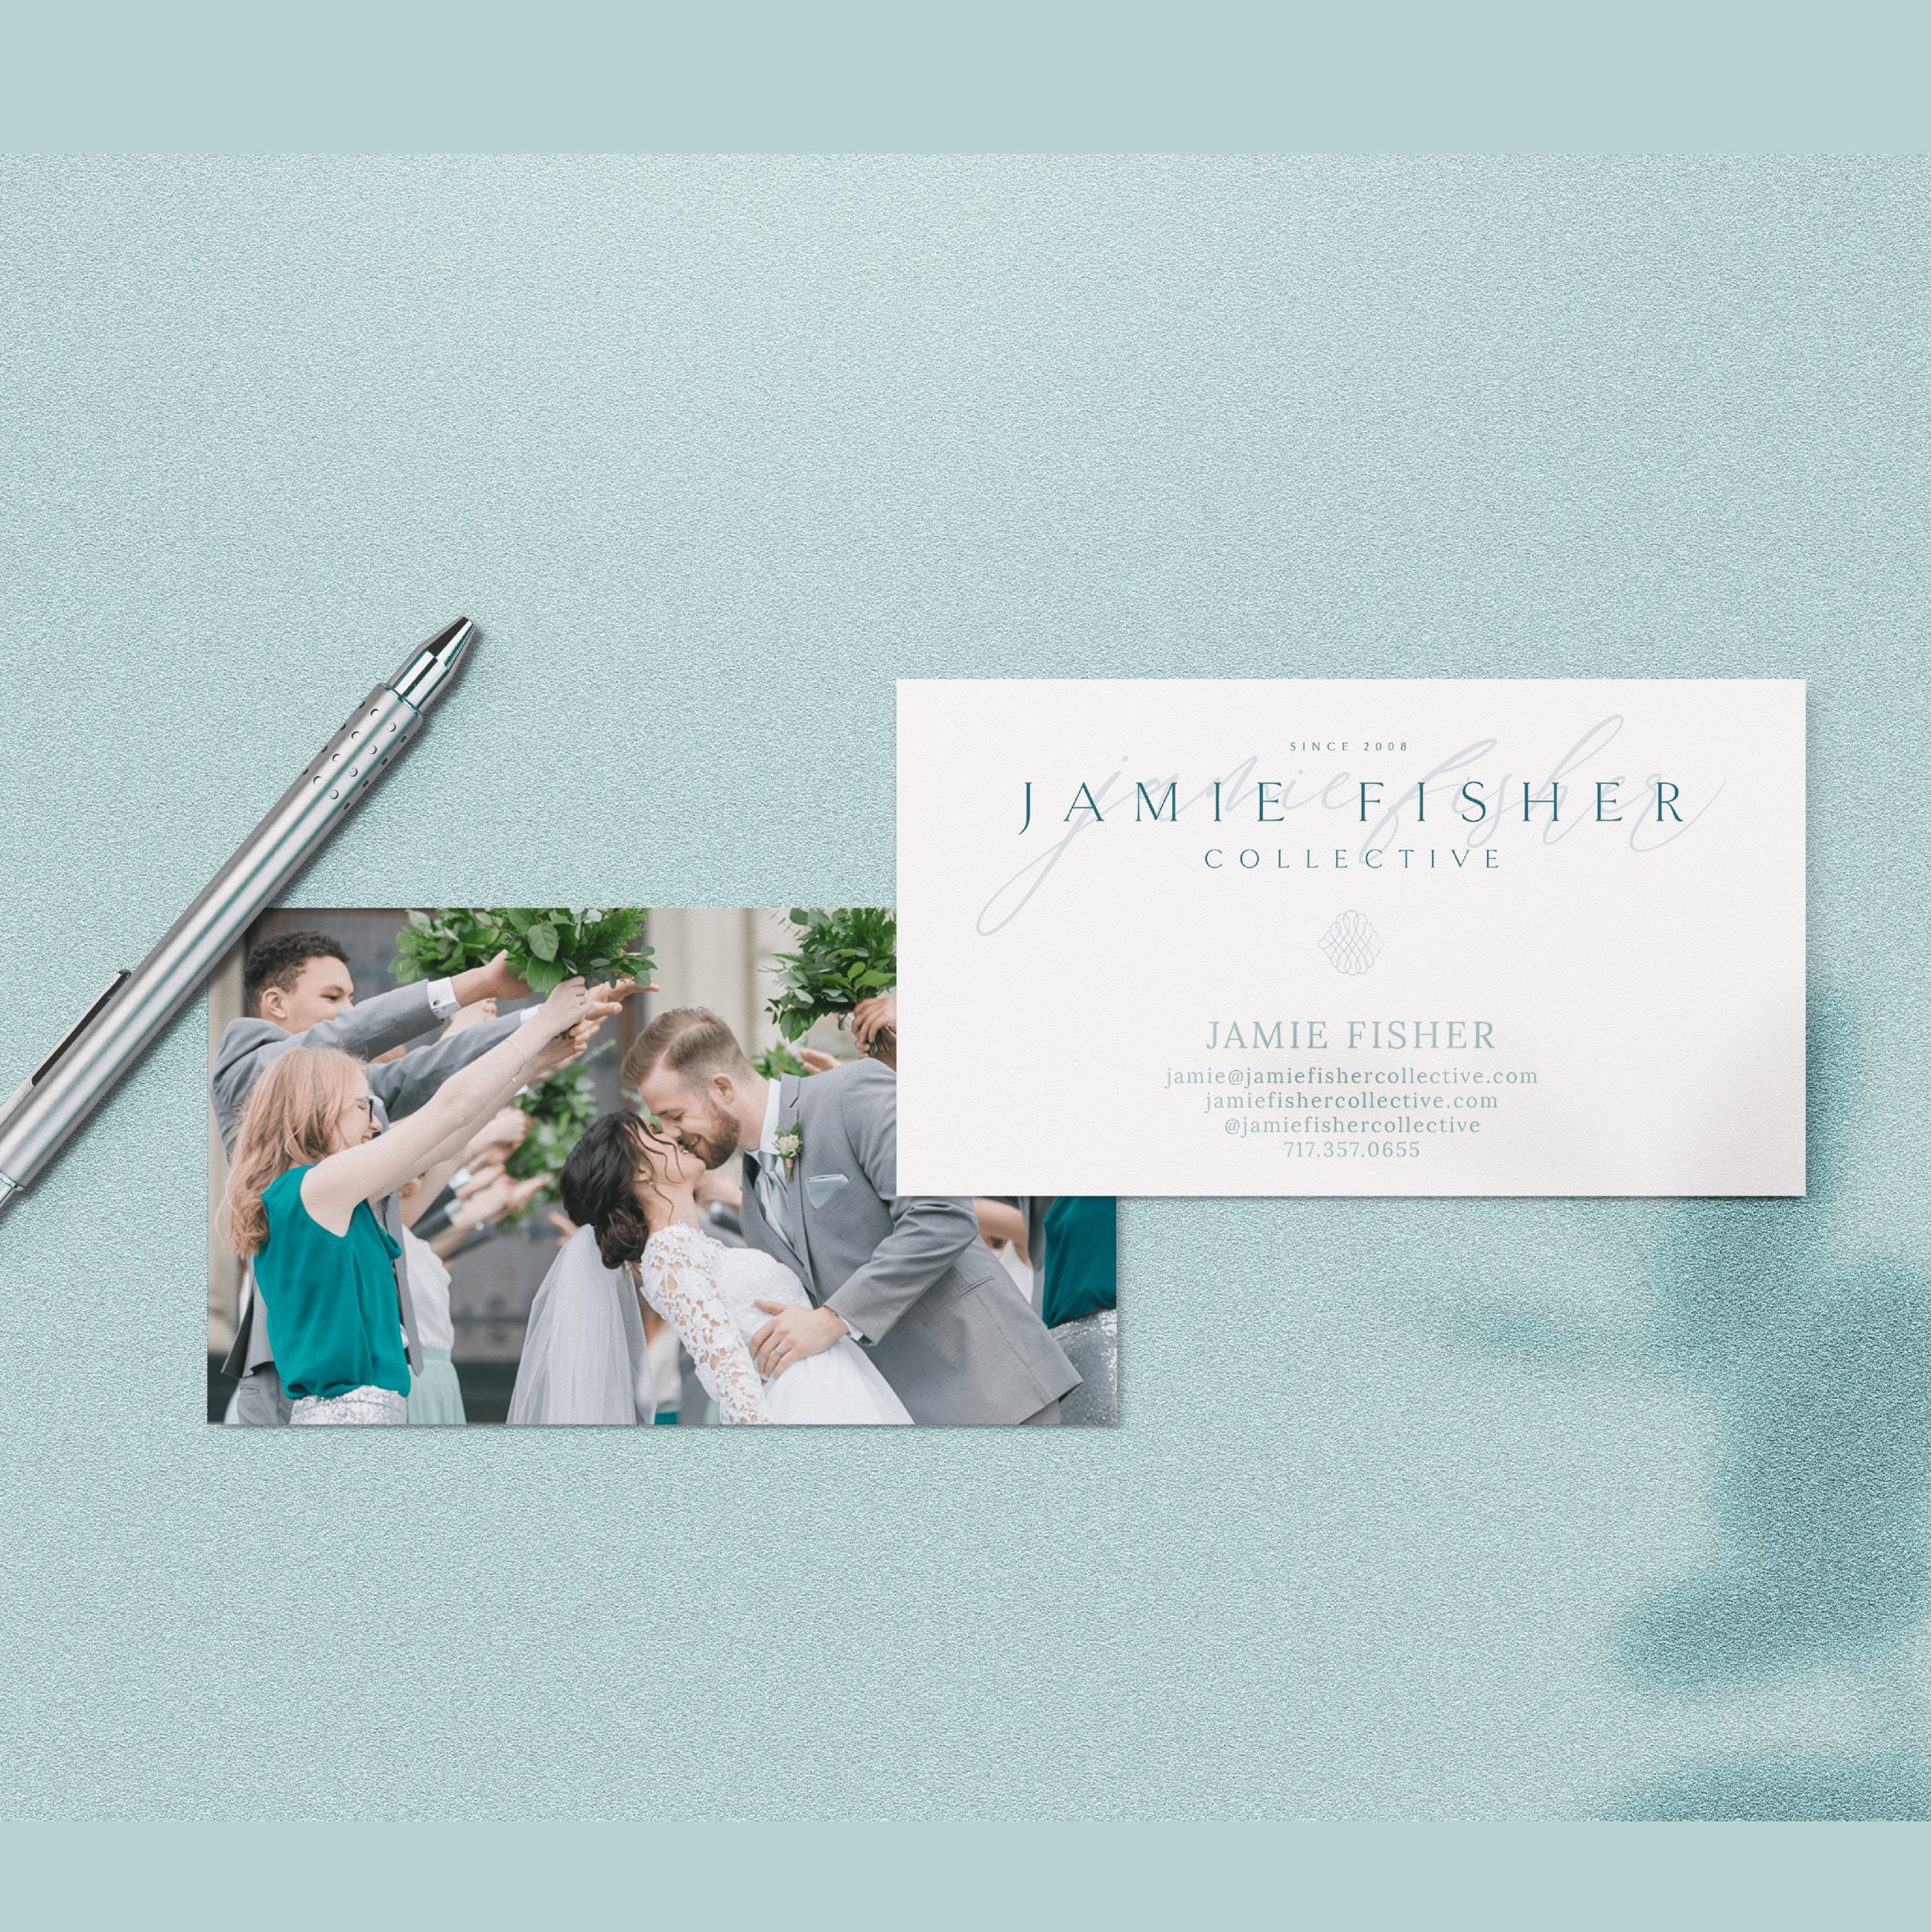 Jamie Fisher Collective Fairfield Pennsylvania Wedding Family Newborn Photography Brand and Logo Design by Kindly by Kelsea